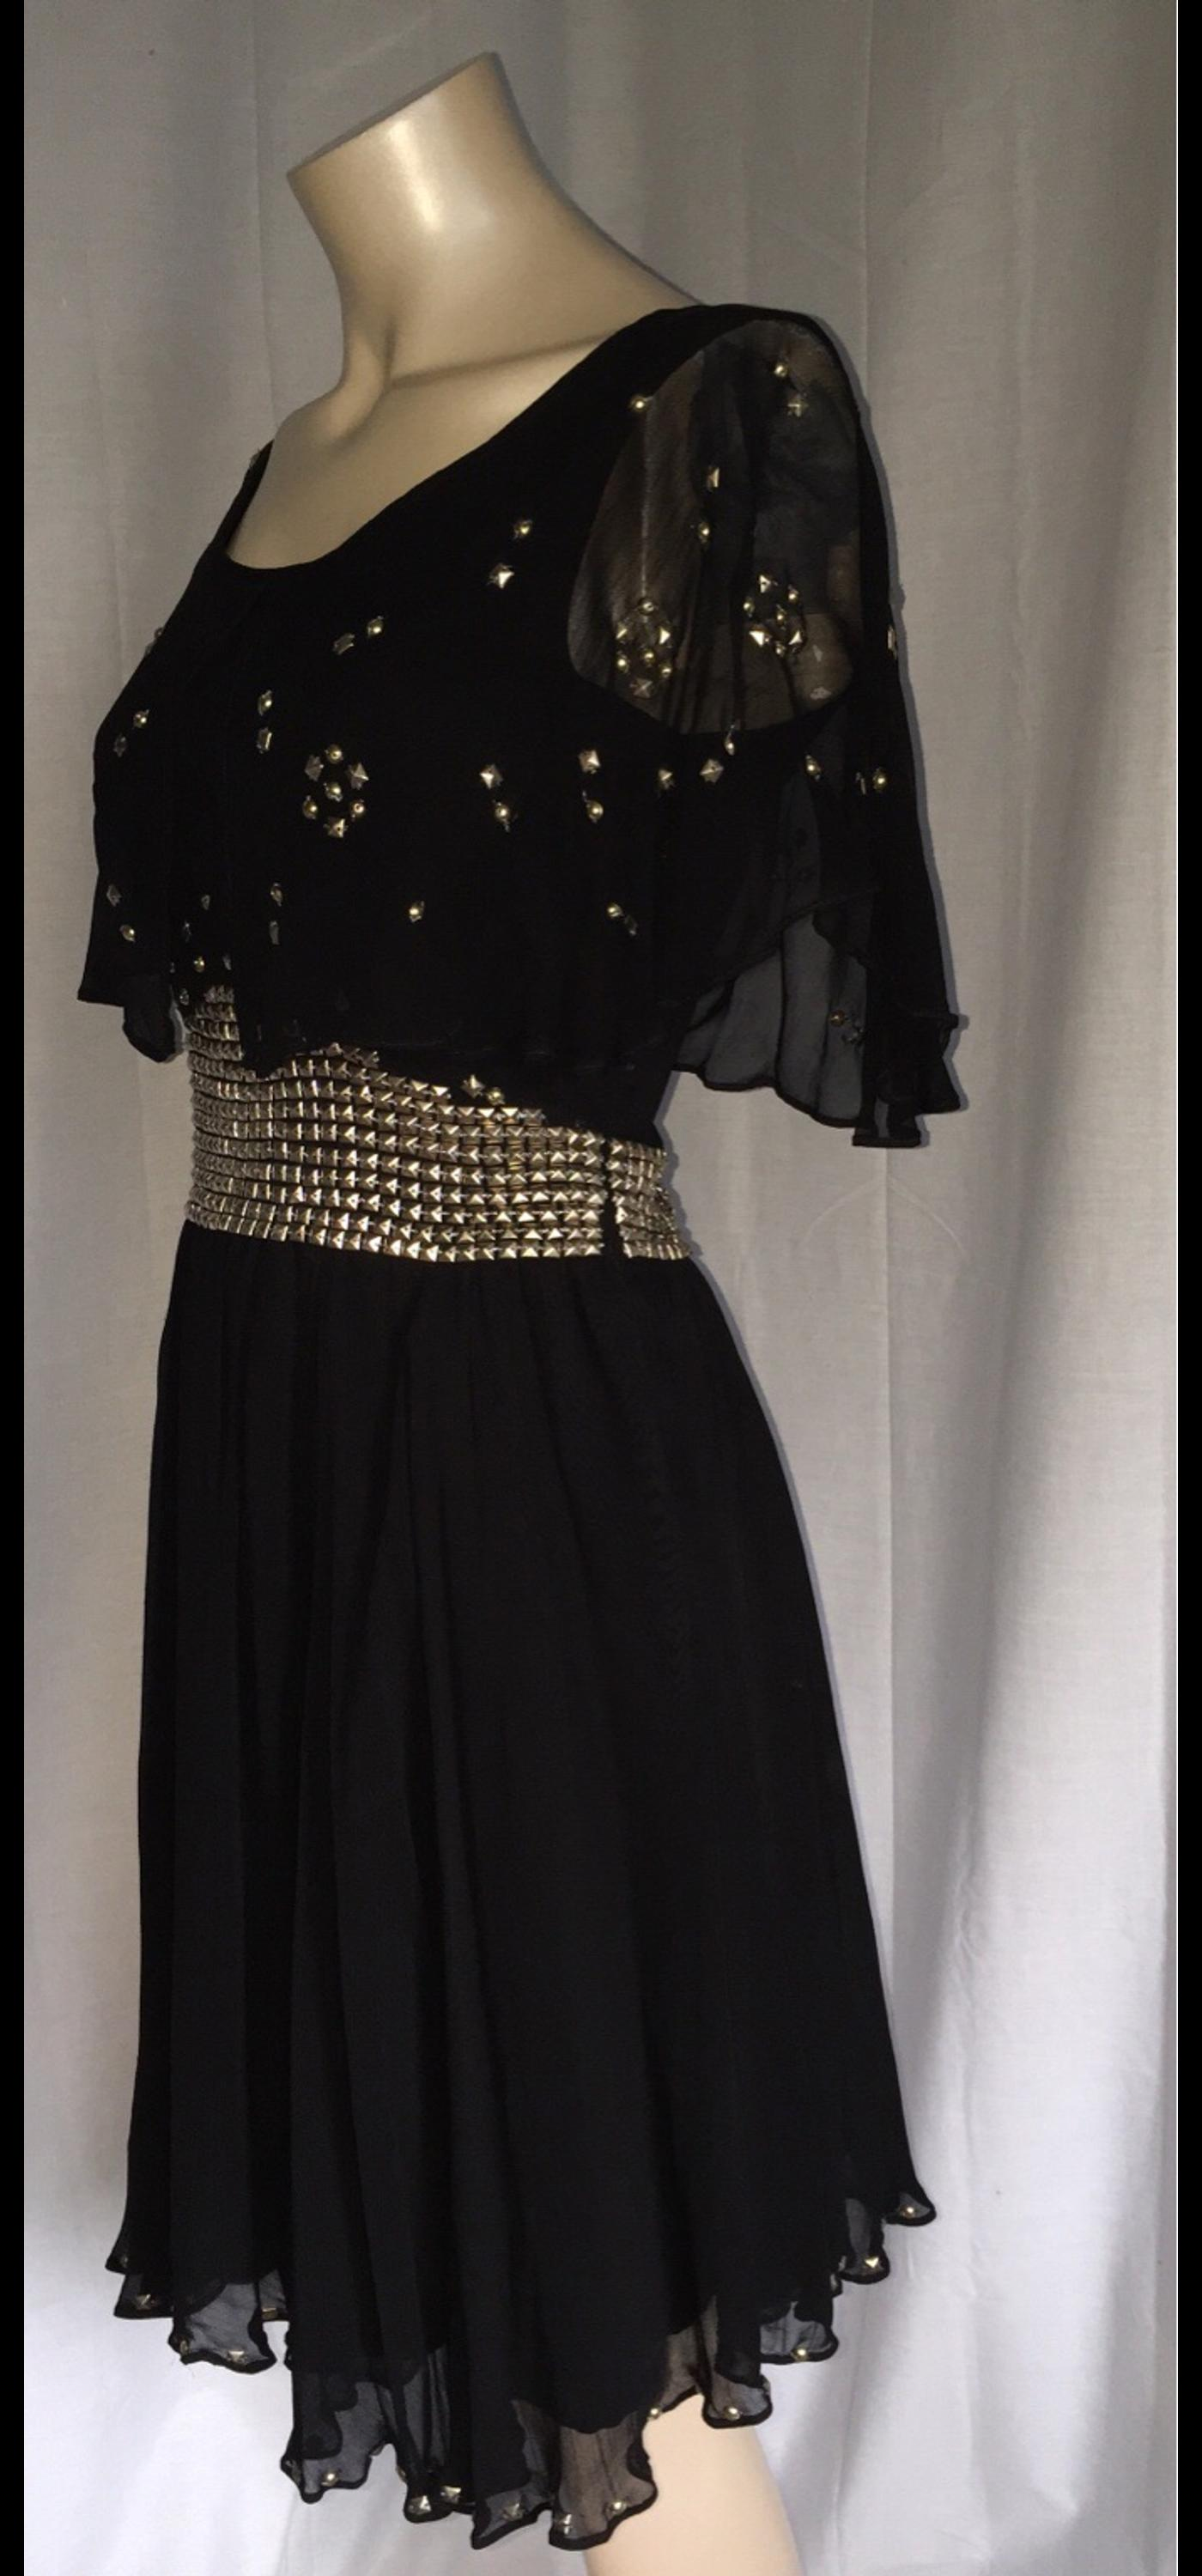 e6dae358ad235 KATE MOSS TOPSHOP BLACK STUDS CAPE DRESS UK 8 in LS27 Leeds for ...